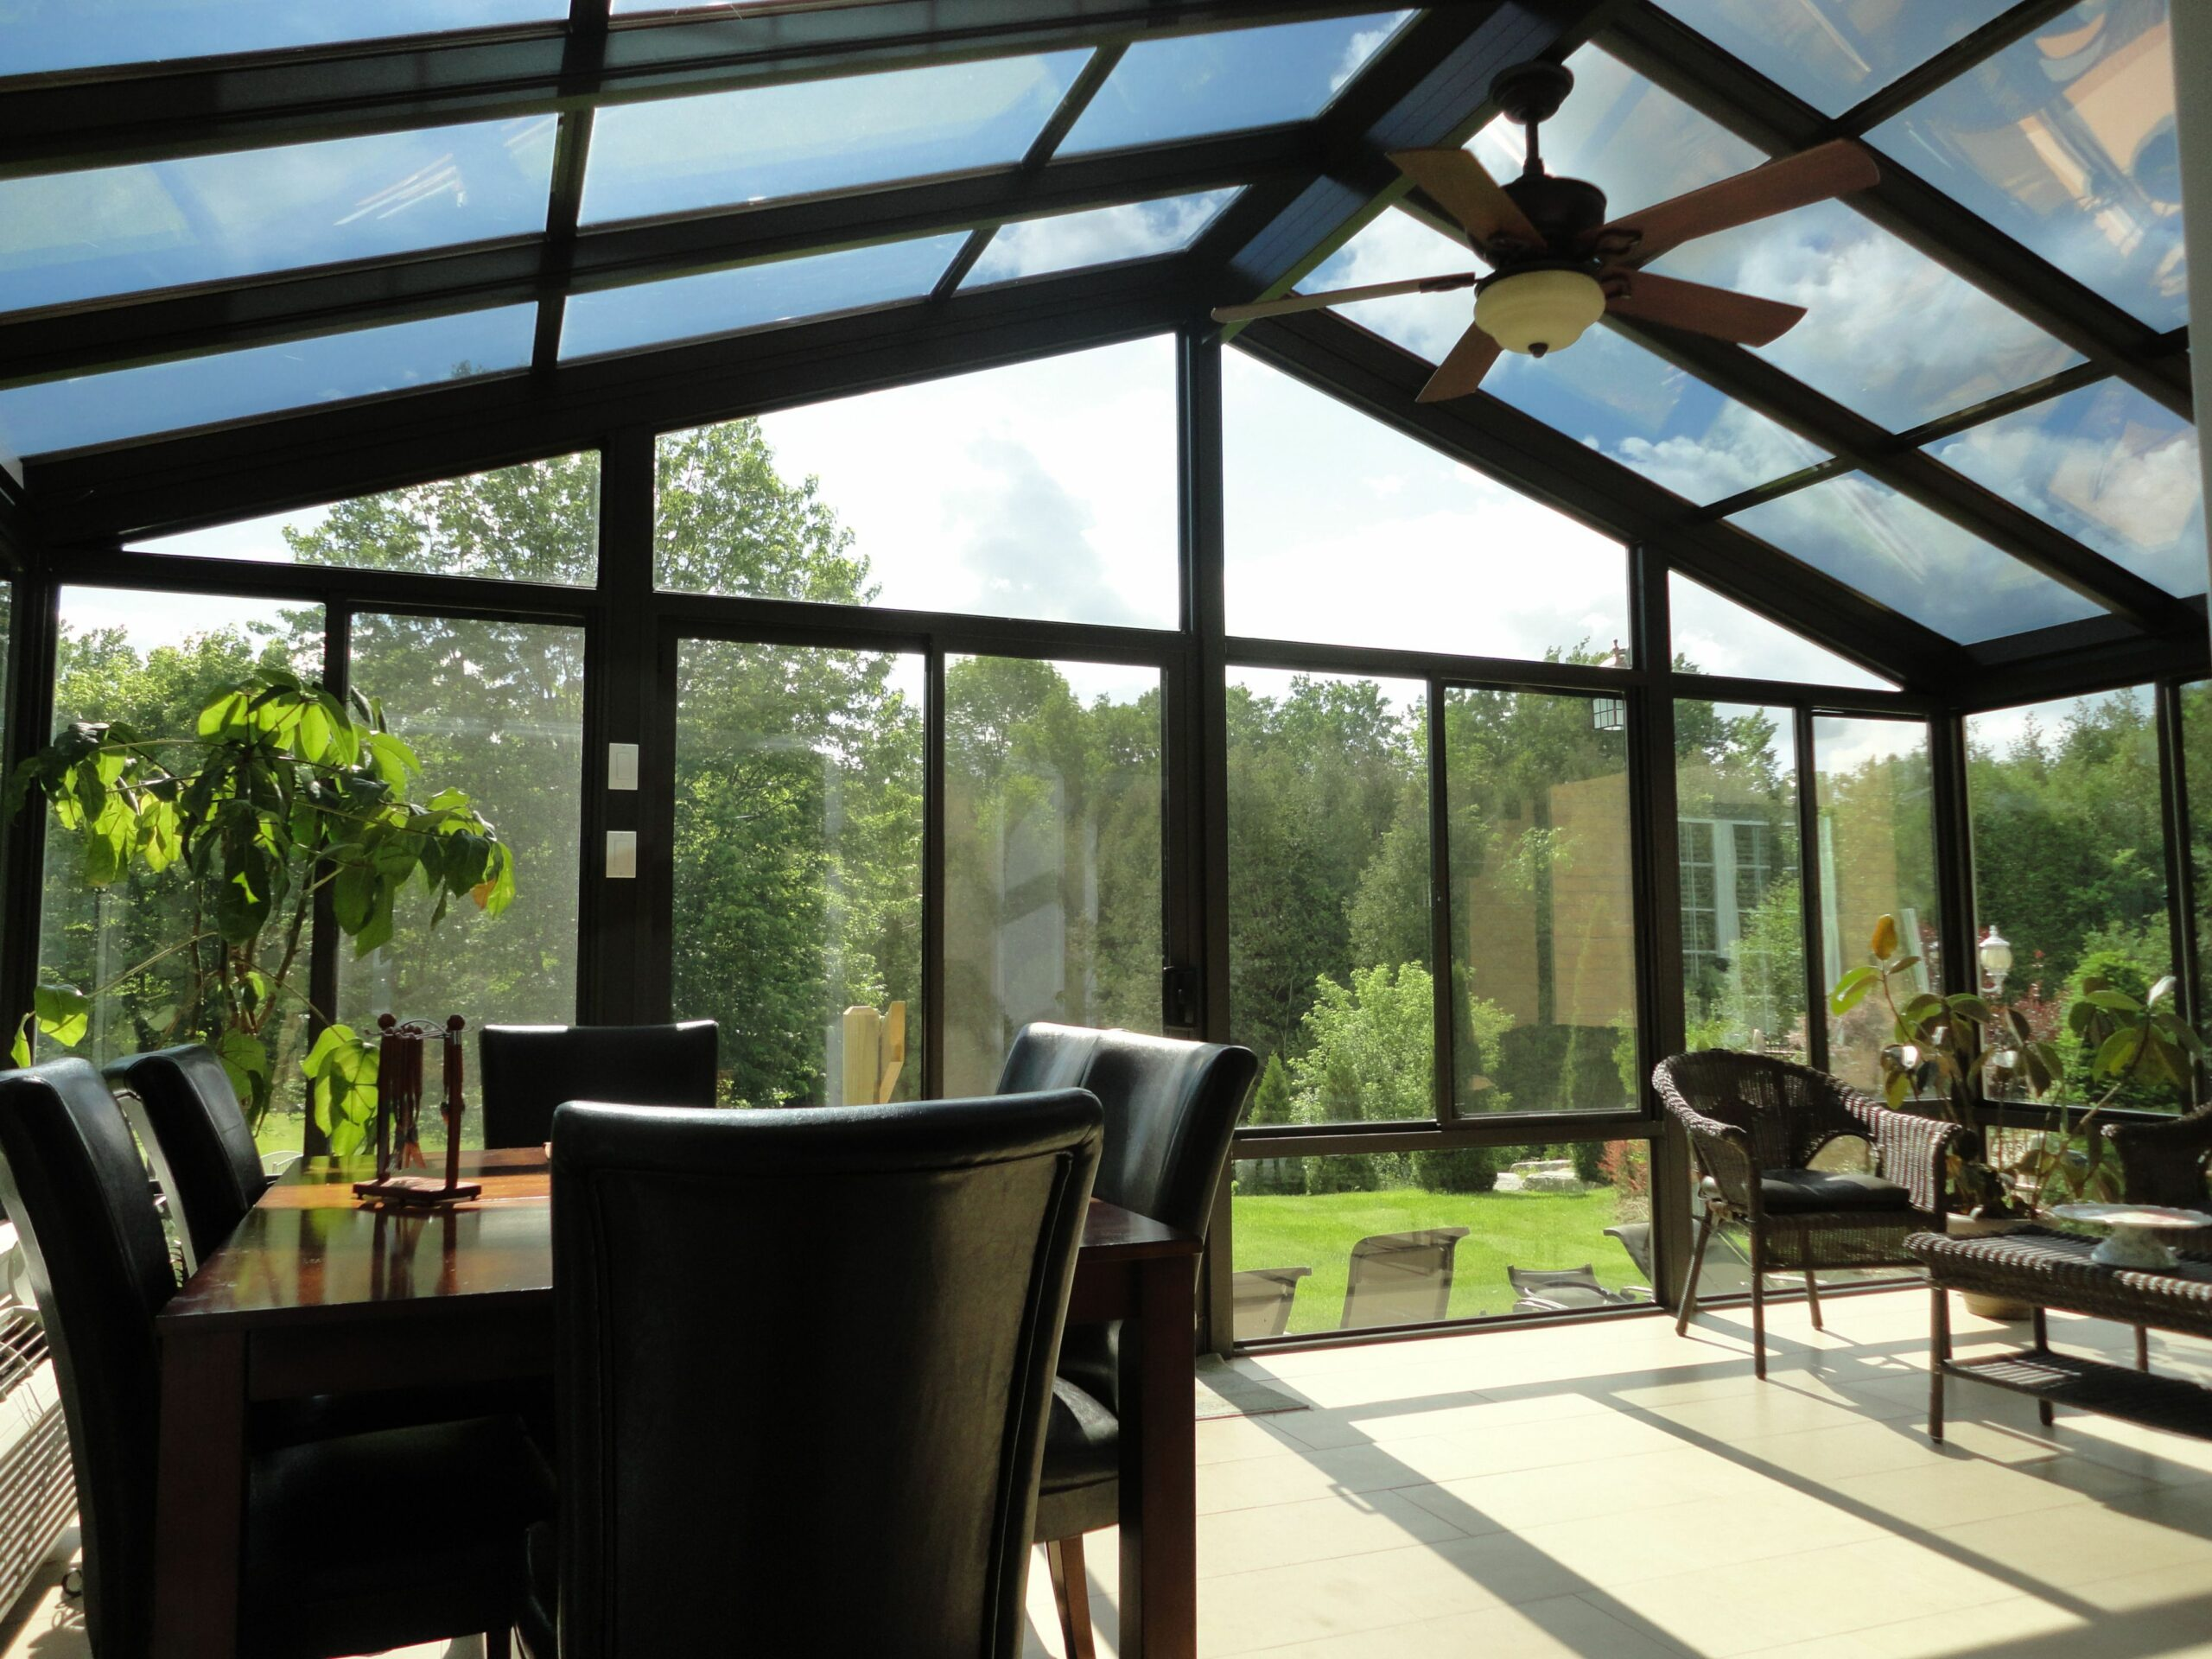 Pin by Four Seasons Sunrooms Toronto on Ideas for the House ..